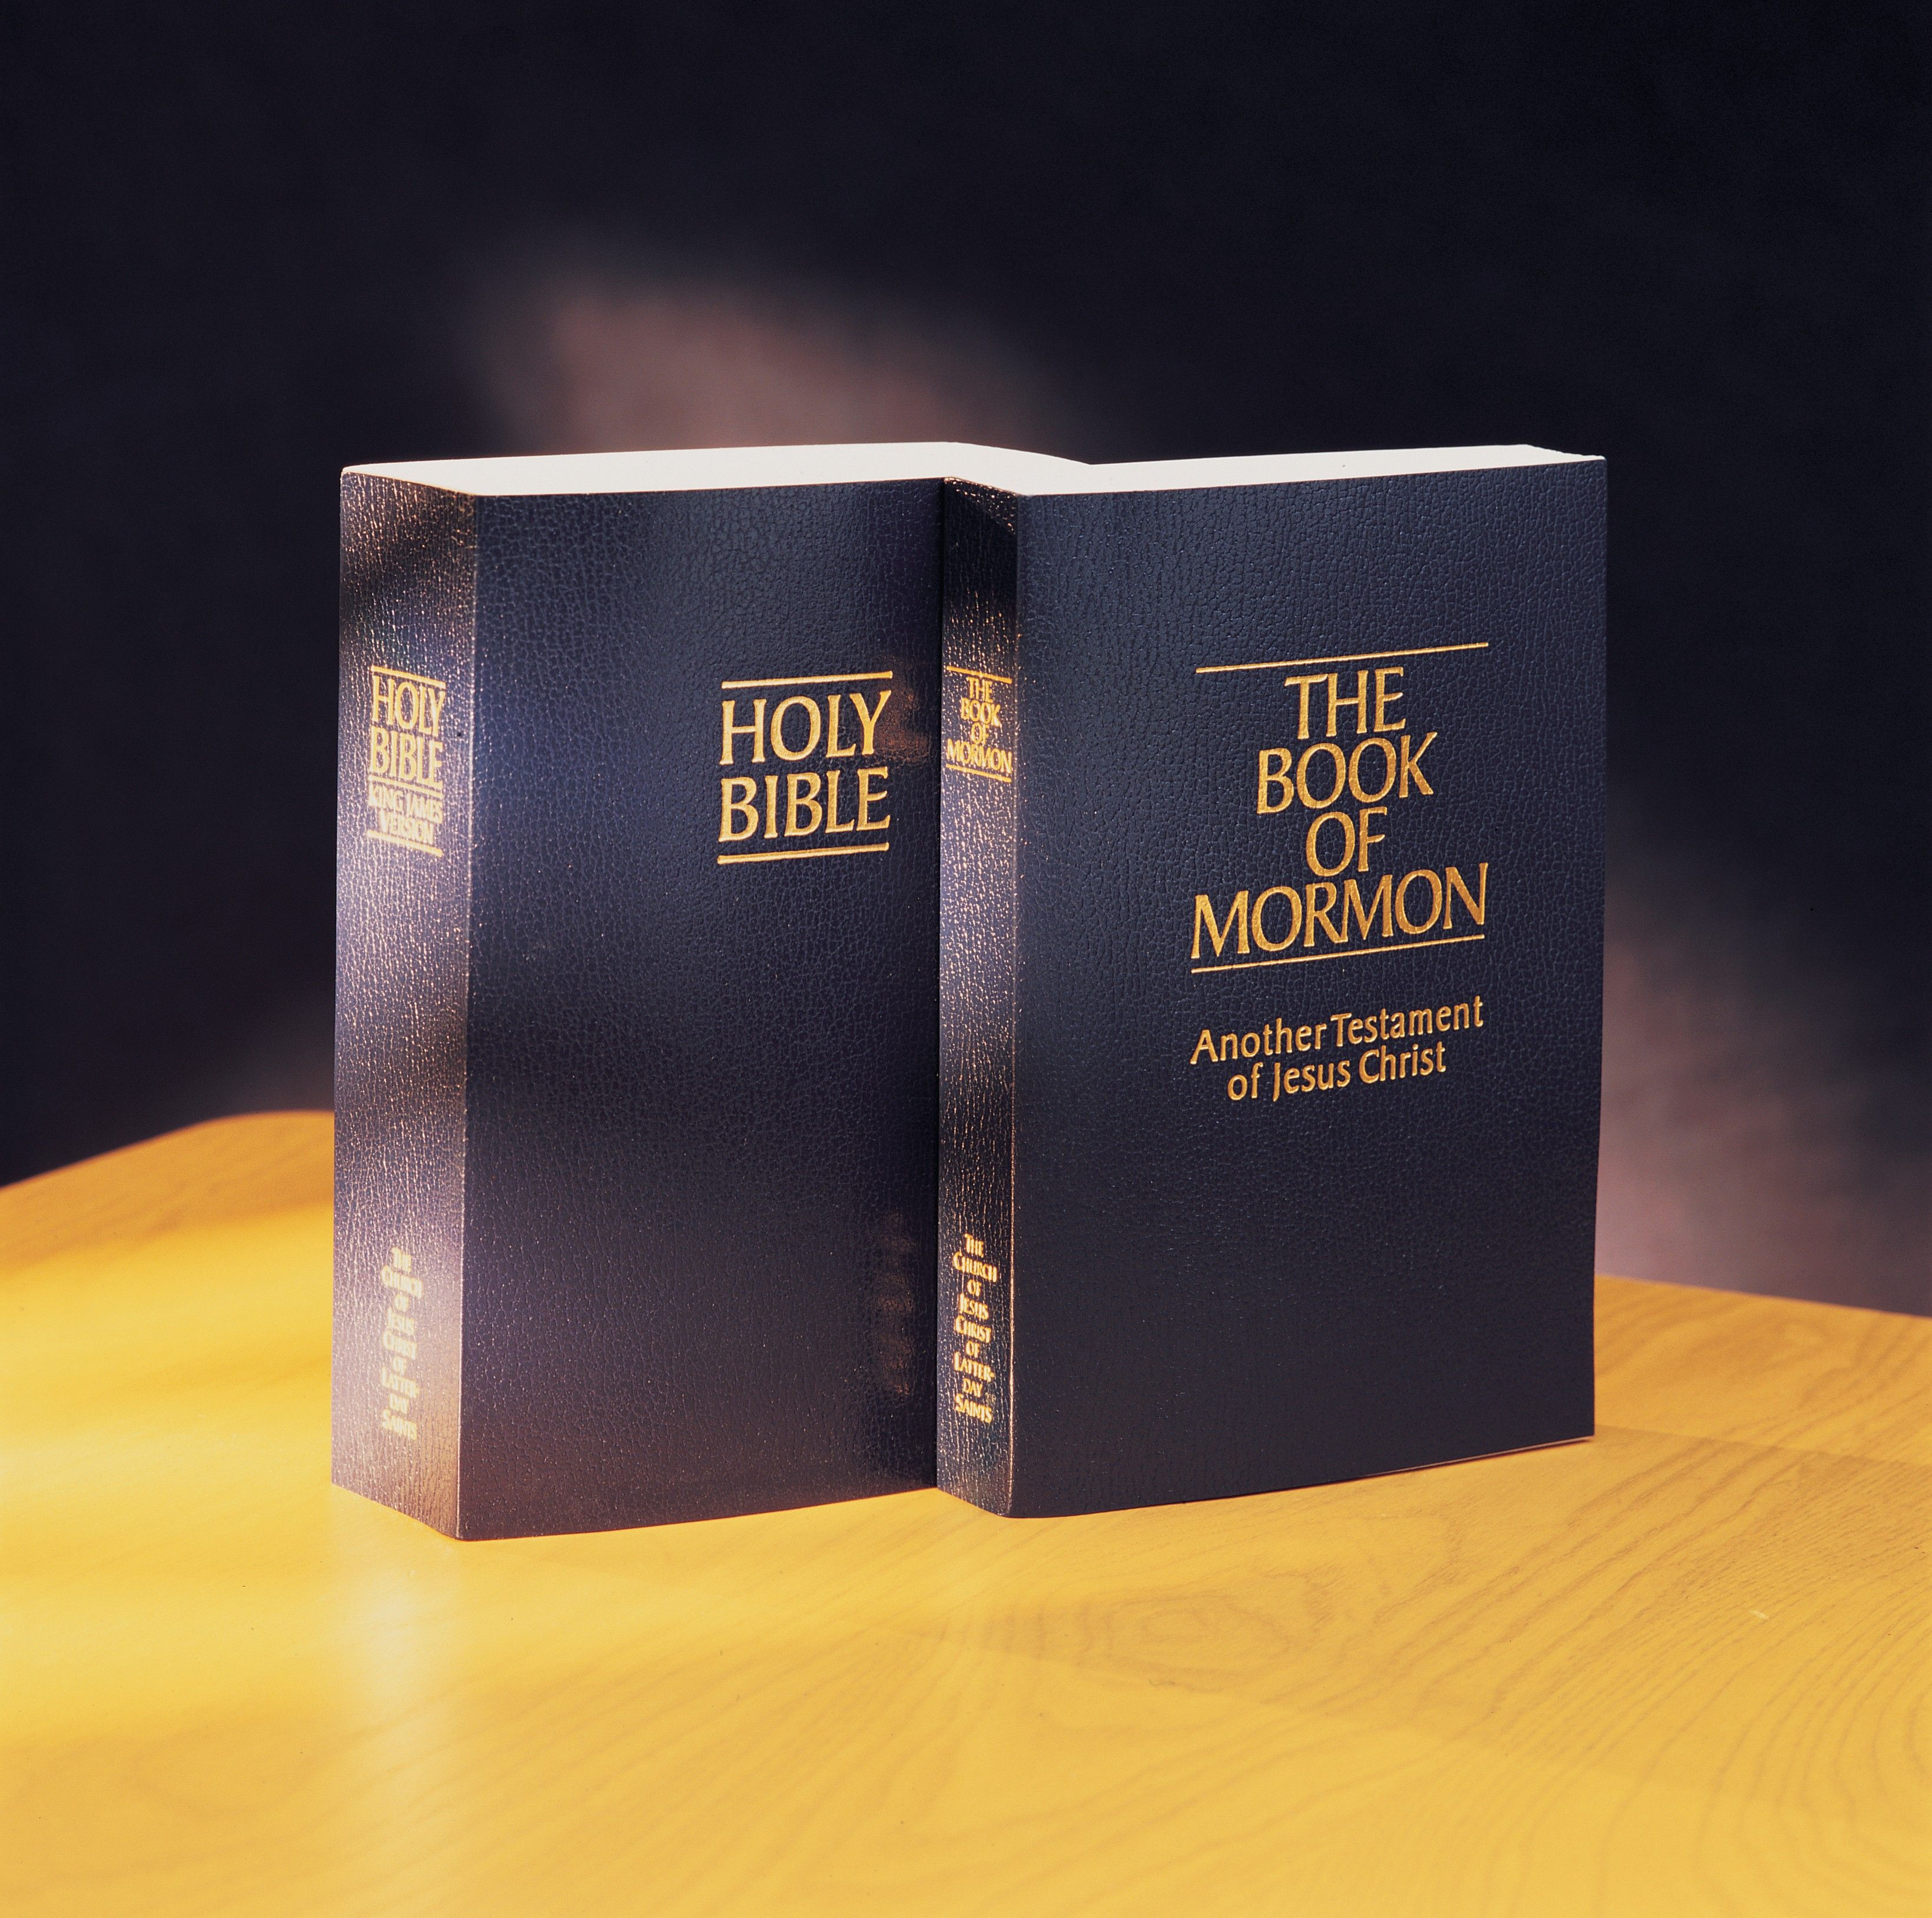 A Bible and a Book of Mormon on a table.